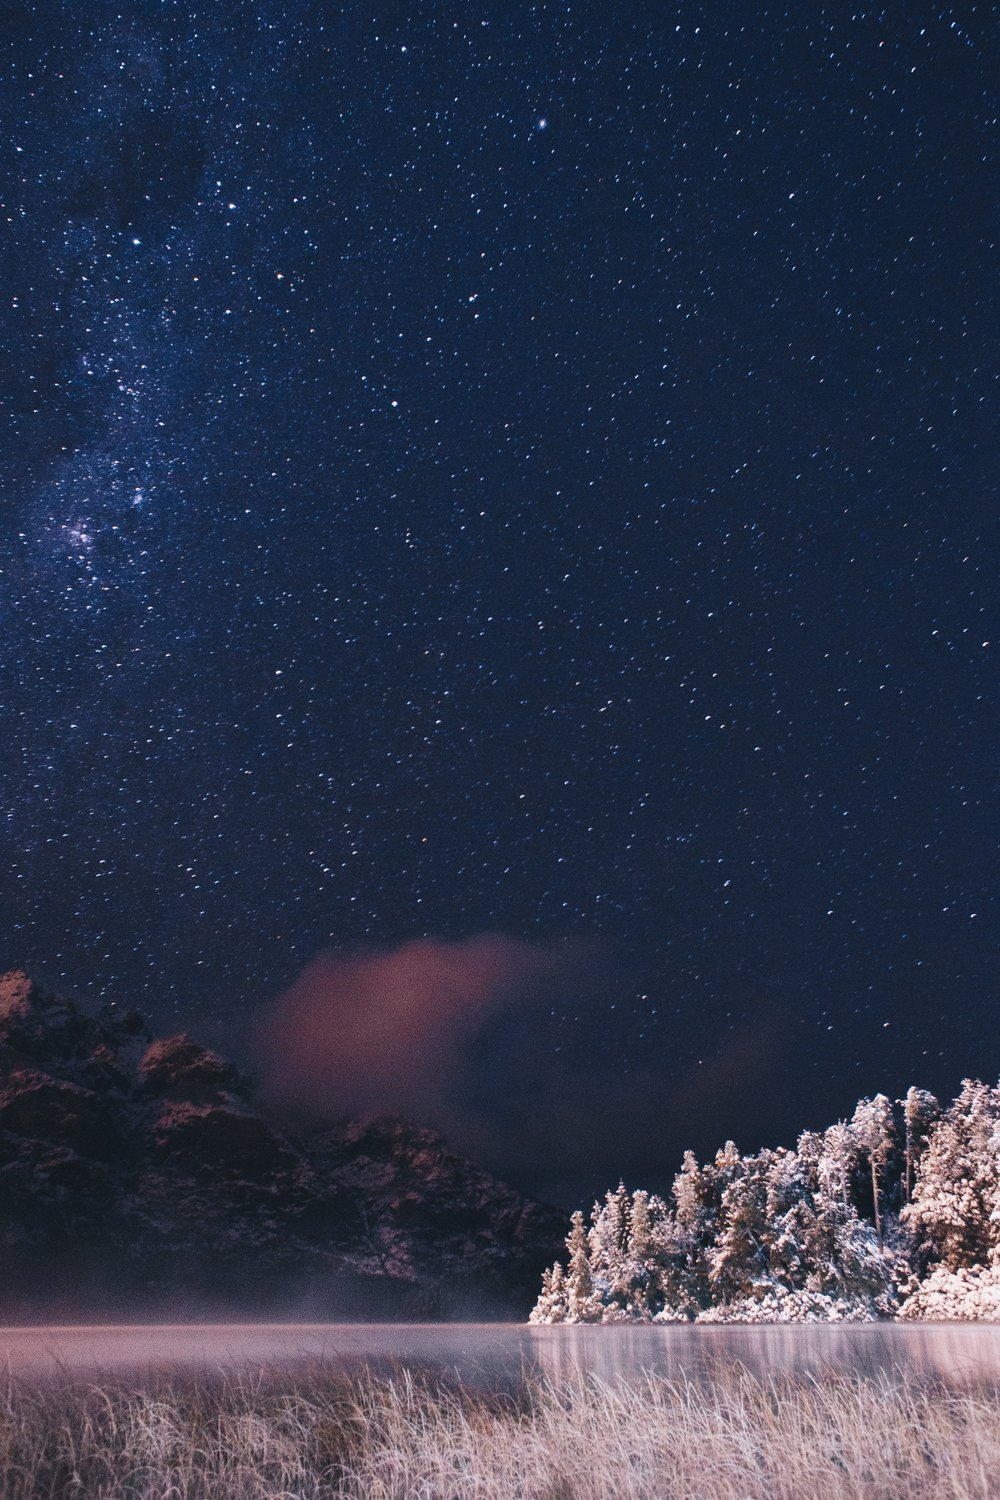 stargazing during the winter